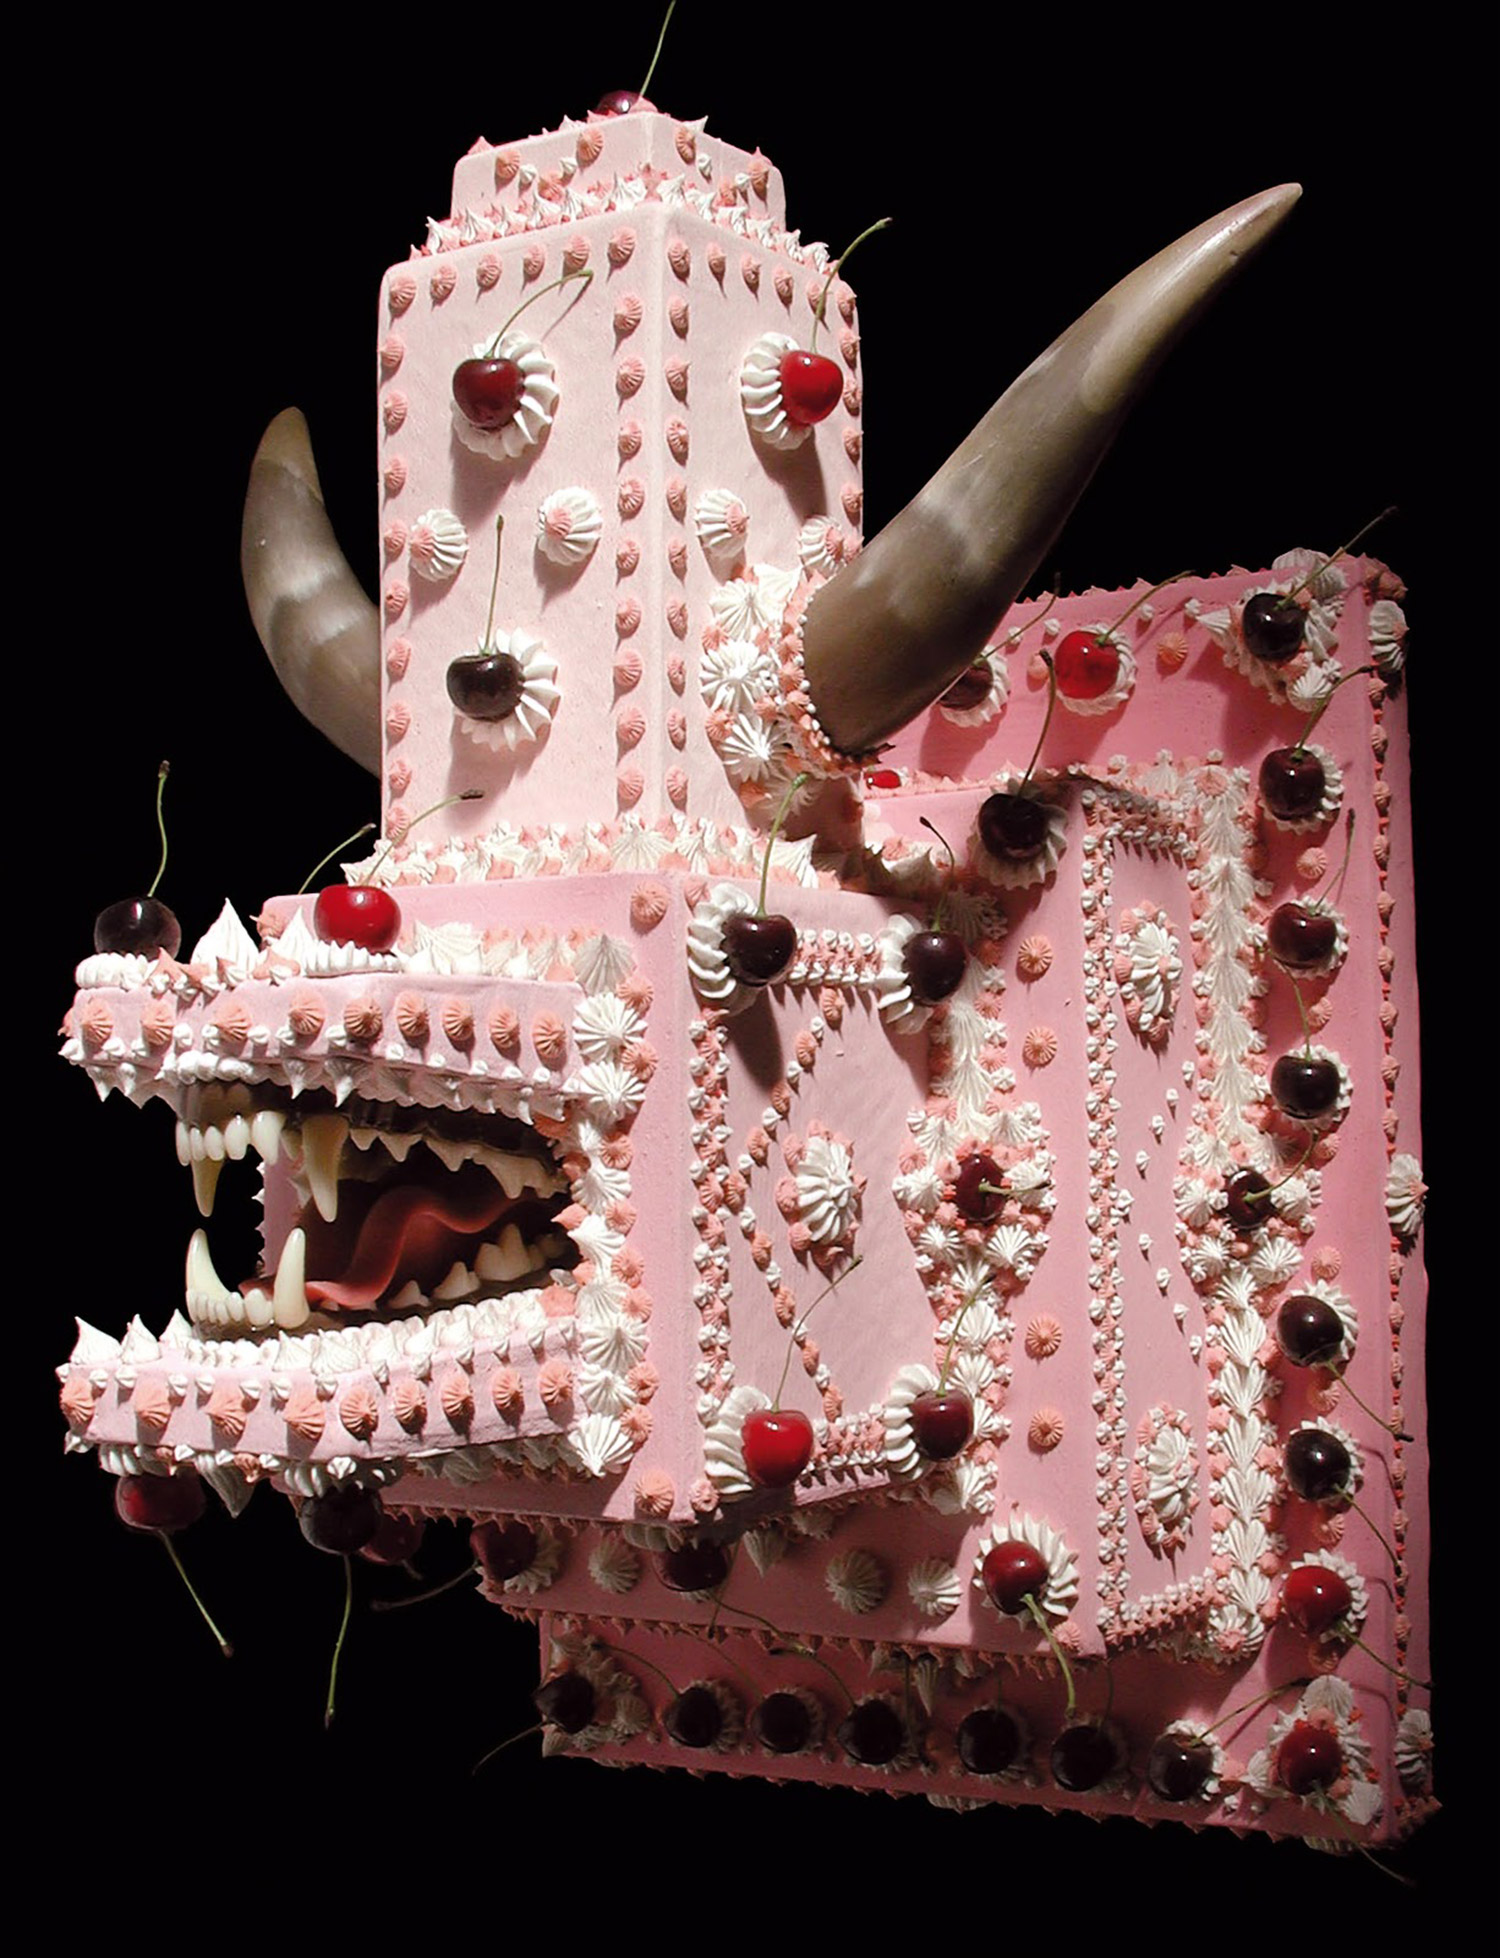 Scott Hove, Cake Fangs - pink demon cake